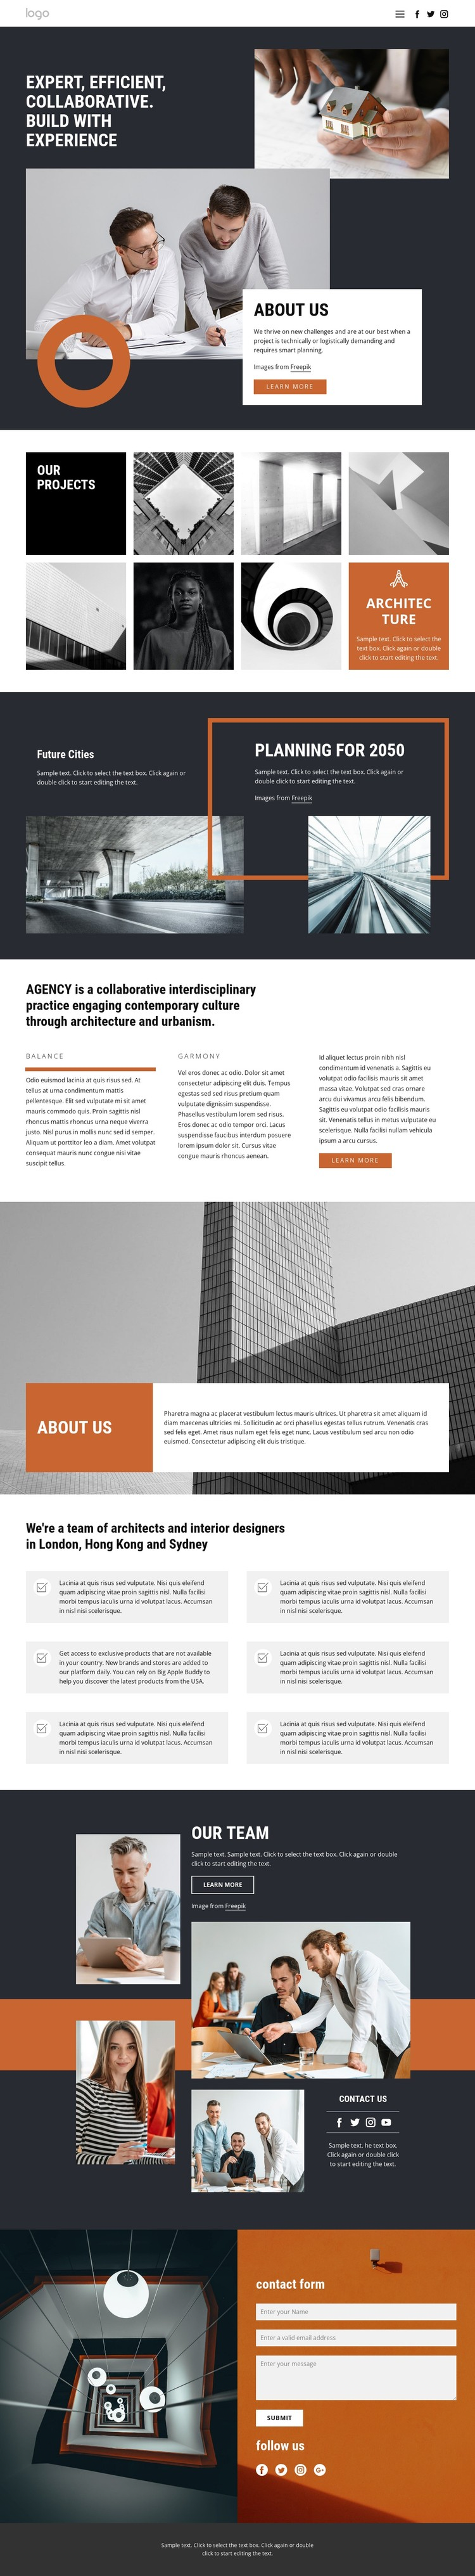 Architects design group Static Site Generator